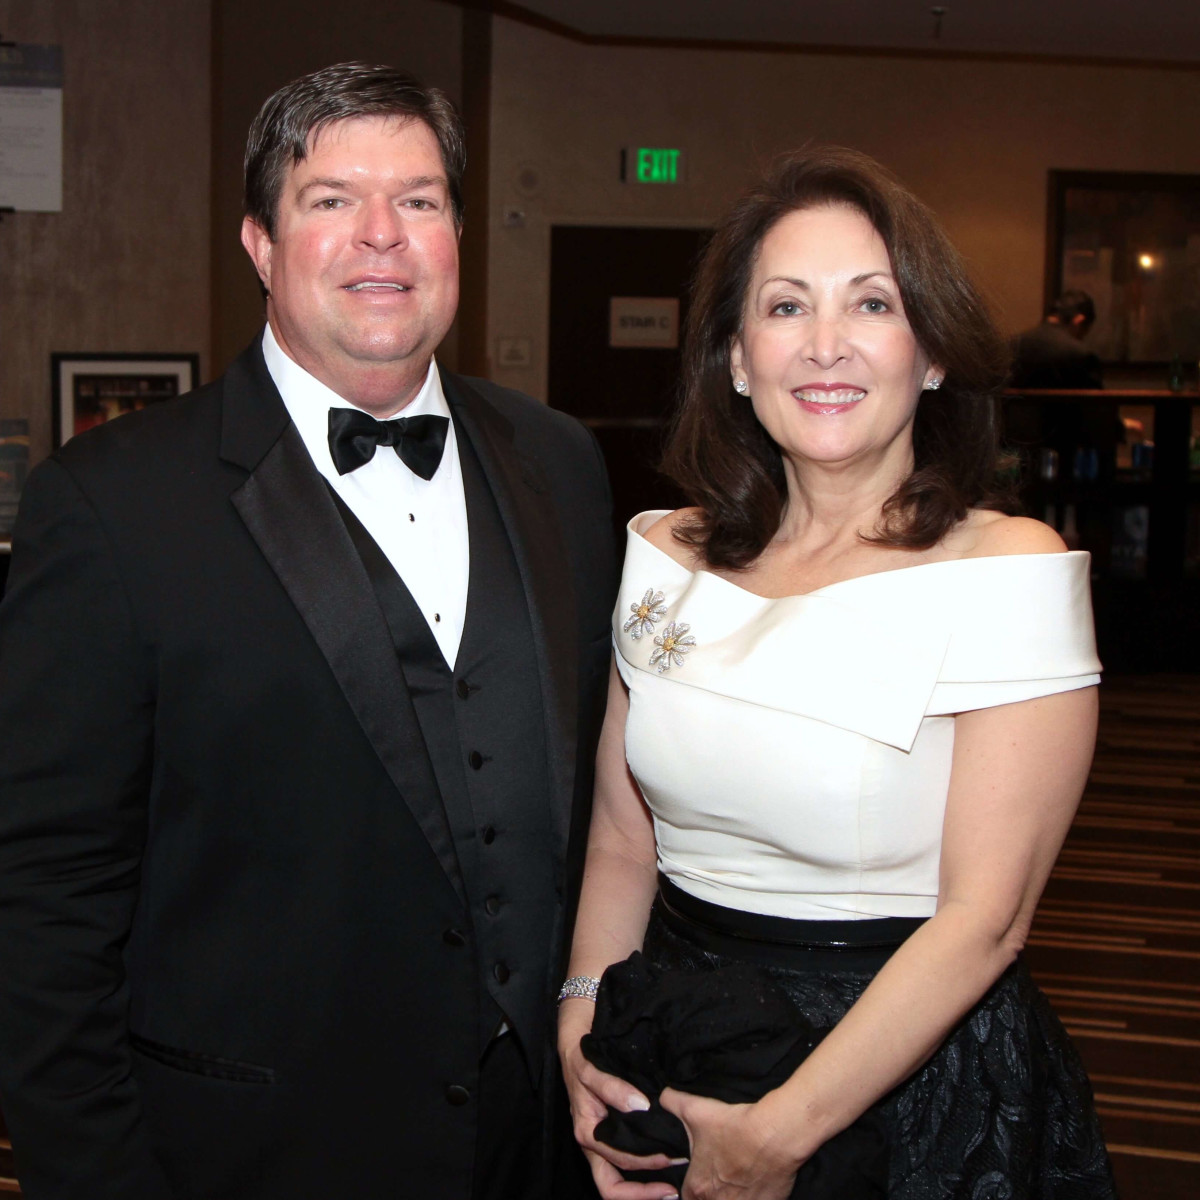 Houston, Houston Children's Charity, Nov. 2016, Bill Truman, Penny Loyd